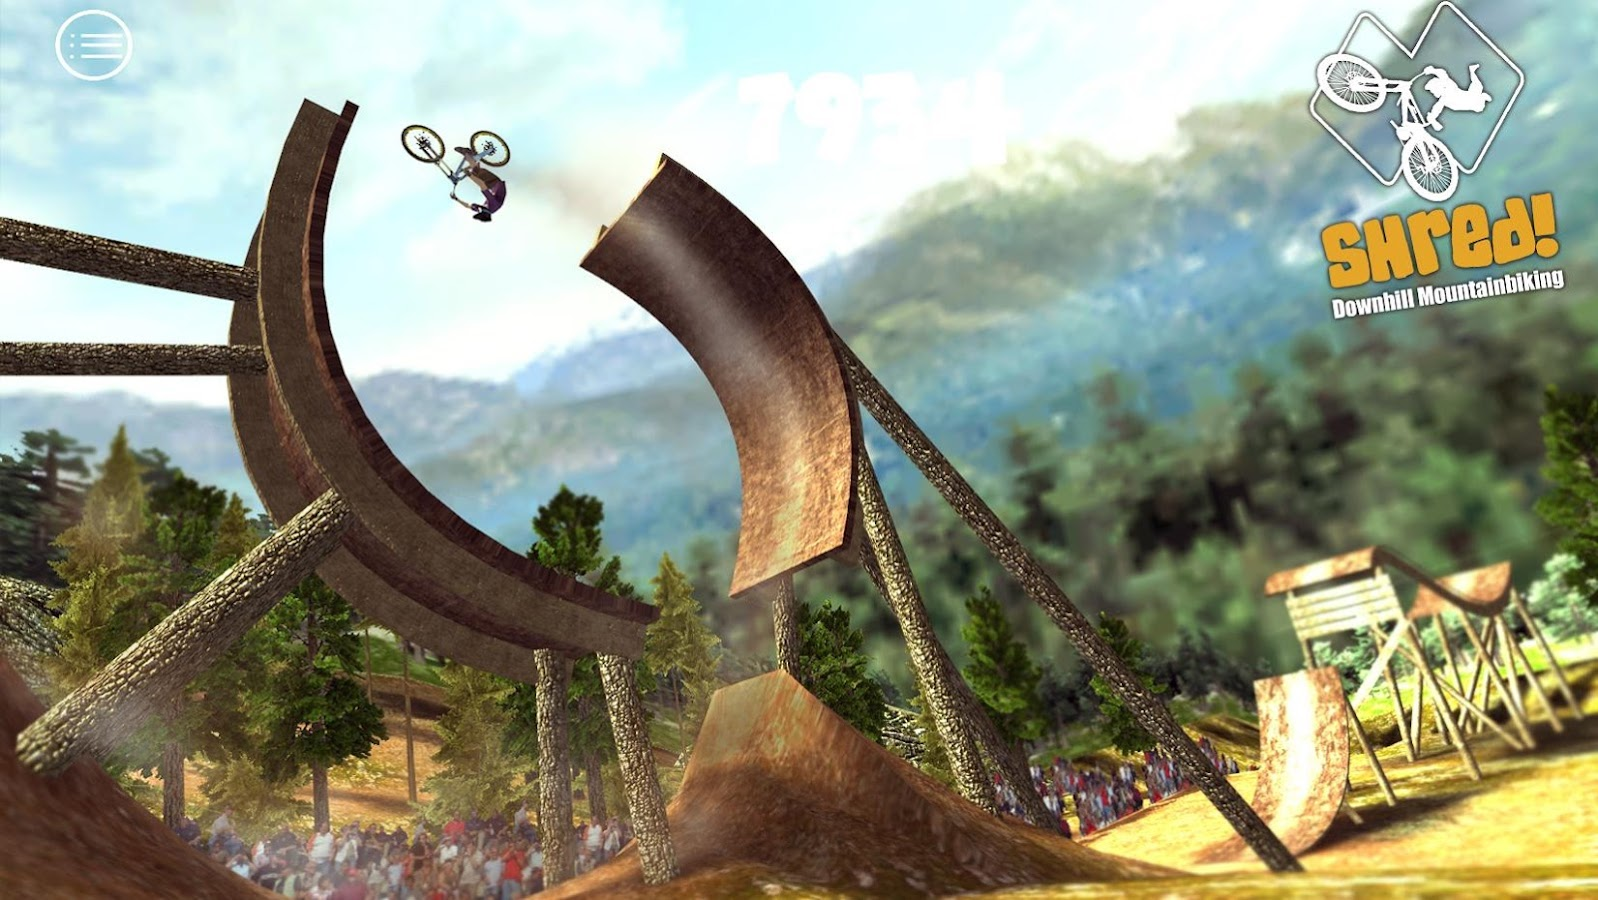 Shred! Downhill Mountainbiking- screenshot